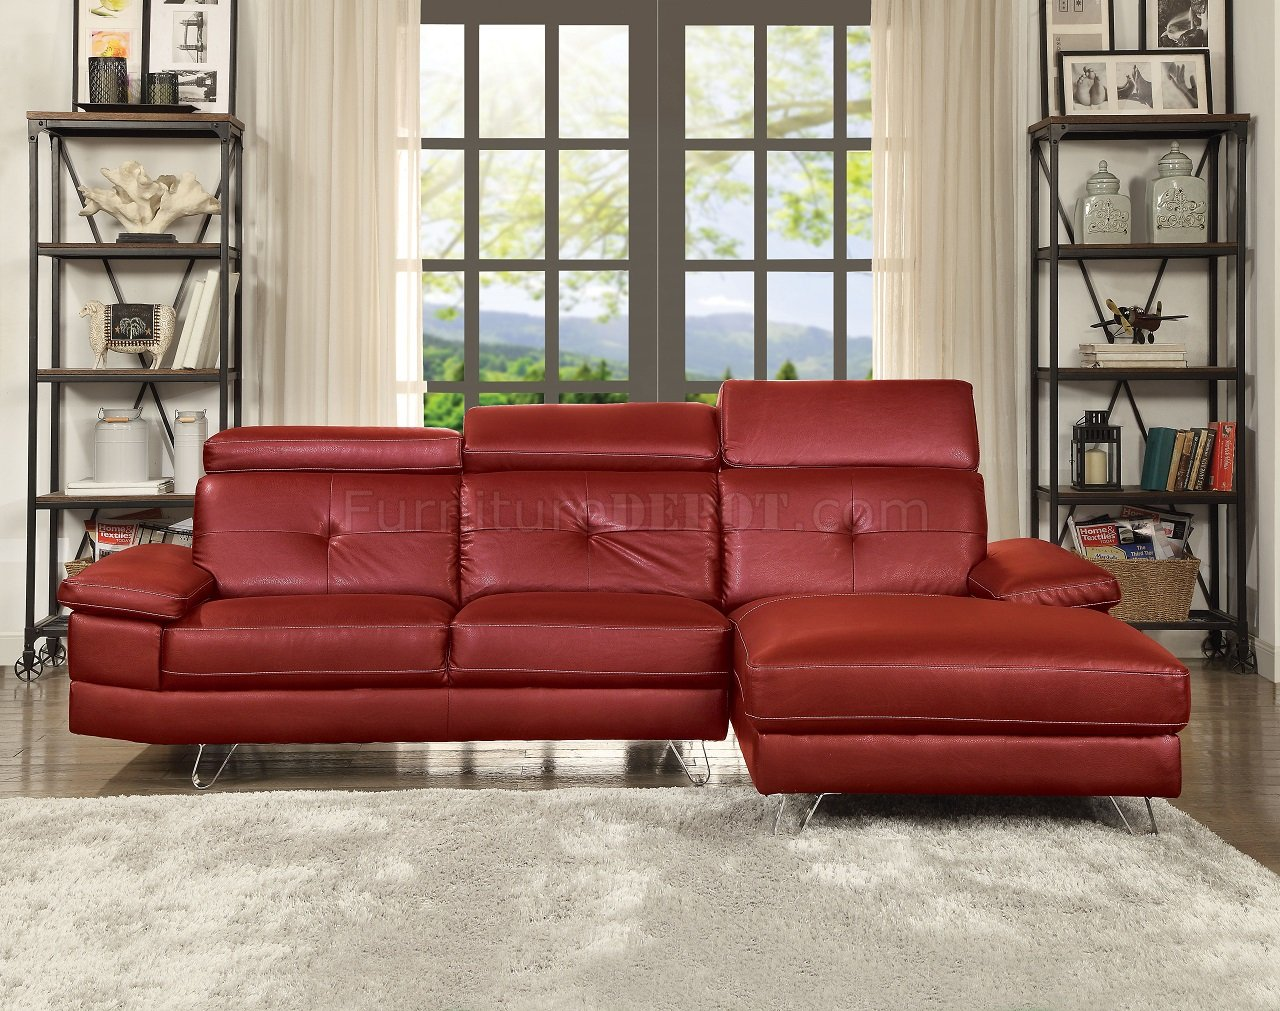 Aeryn Sectional Sofa 52040 in Red PU by Acme